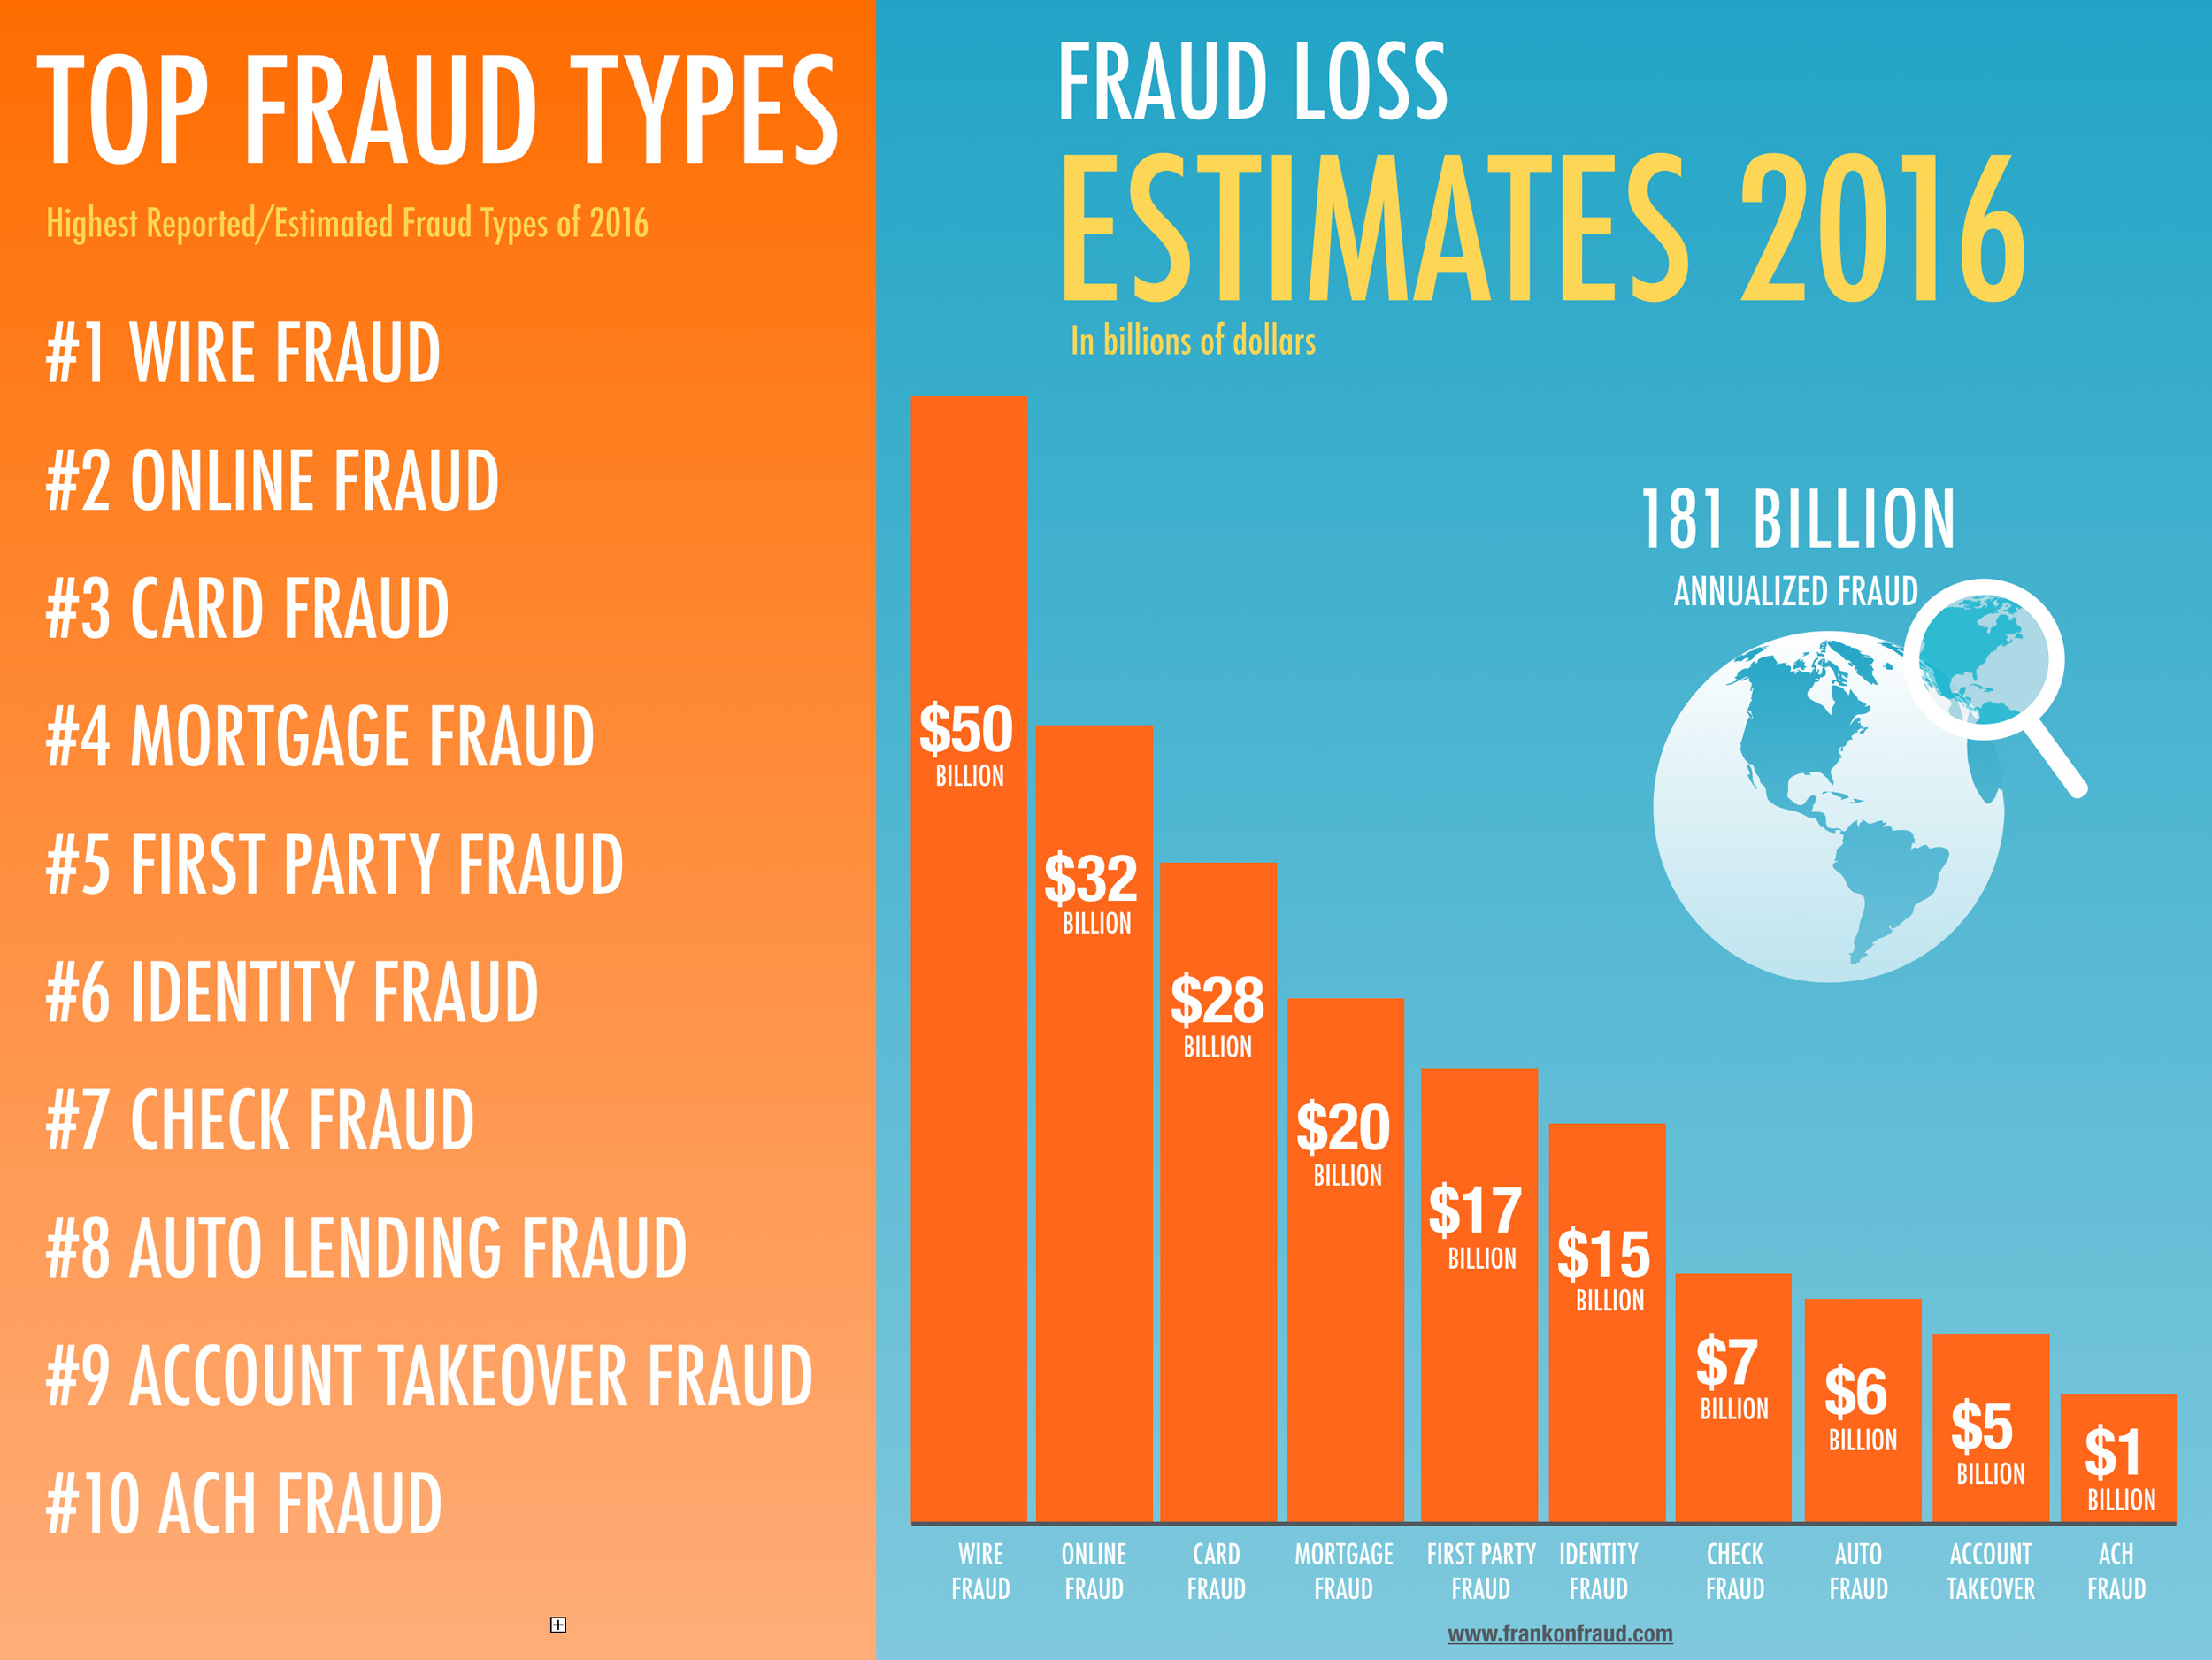 estimated-losses-by-fraud-type-2016